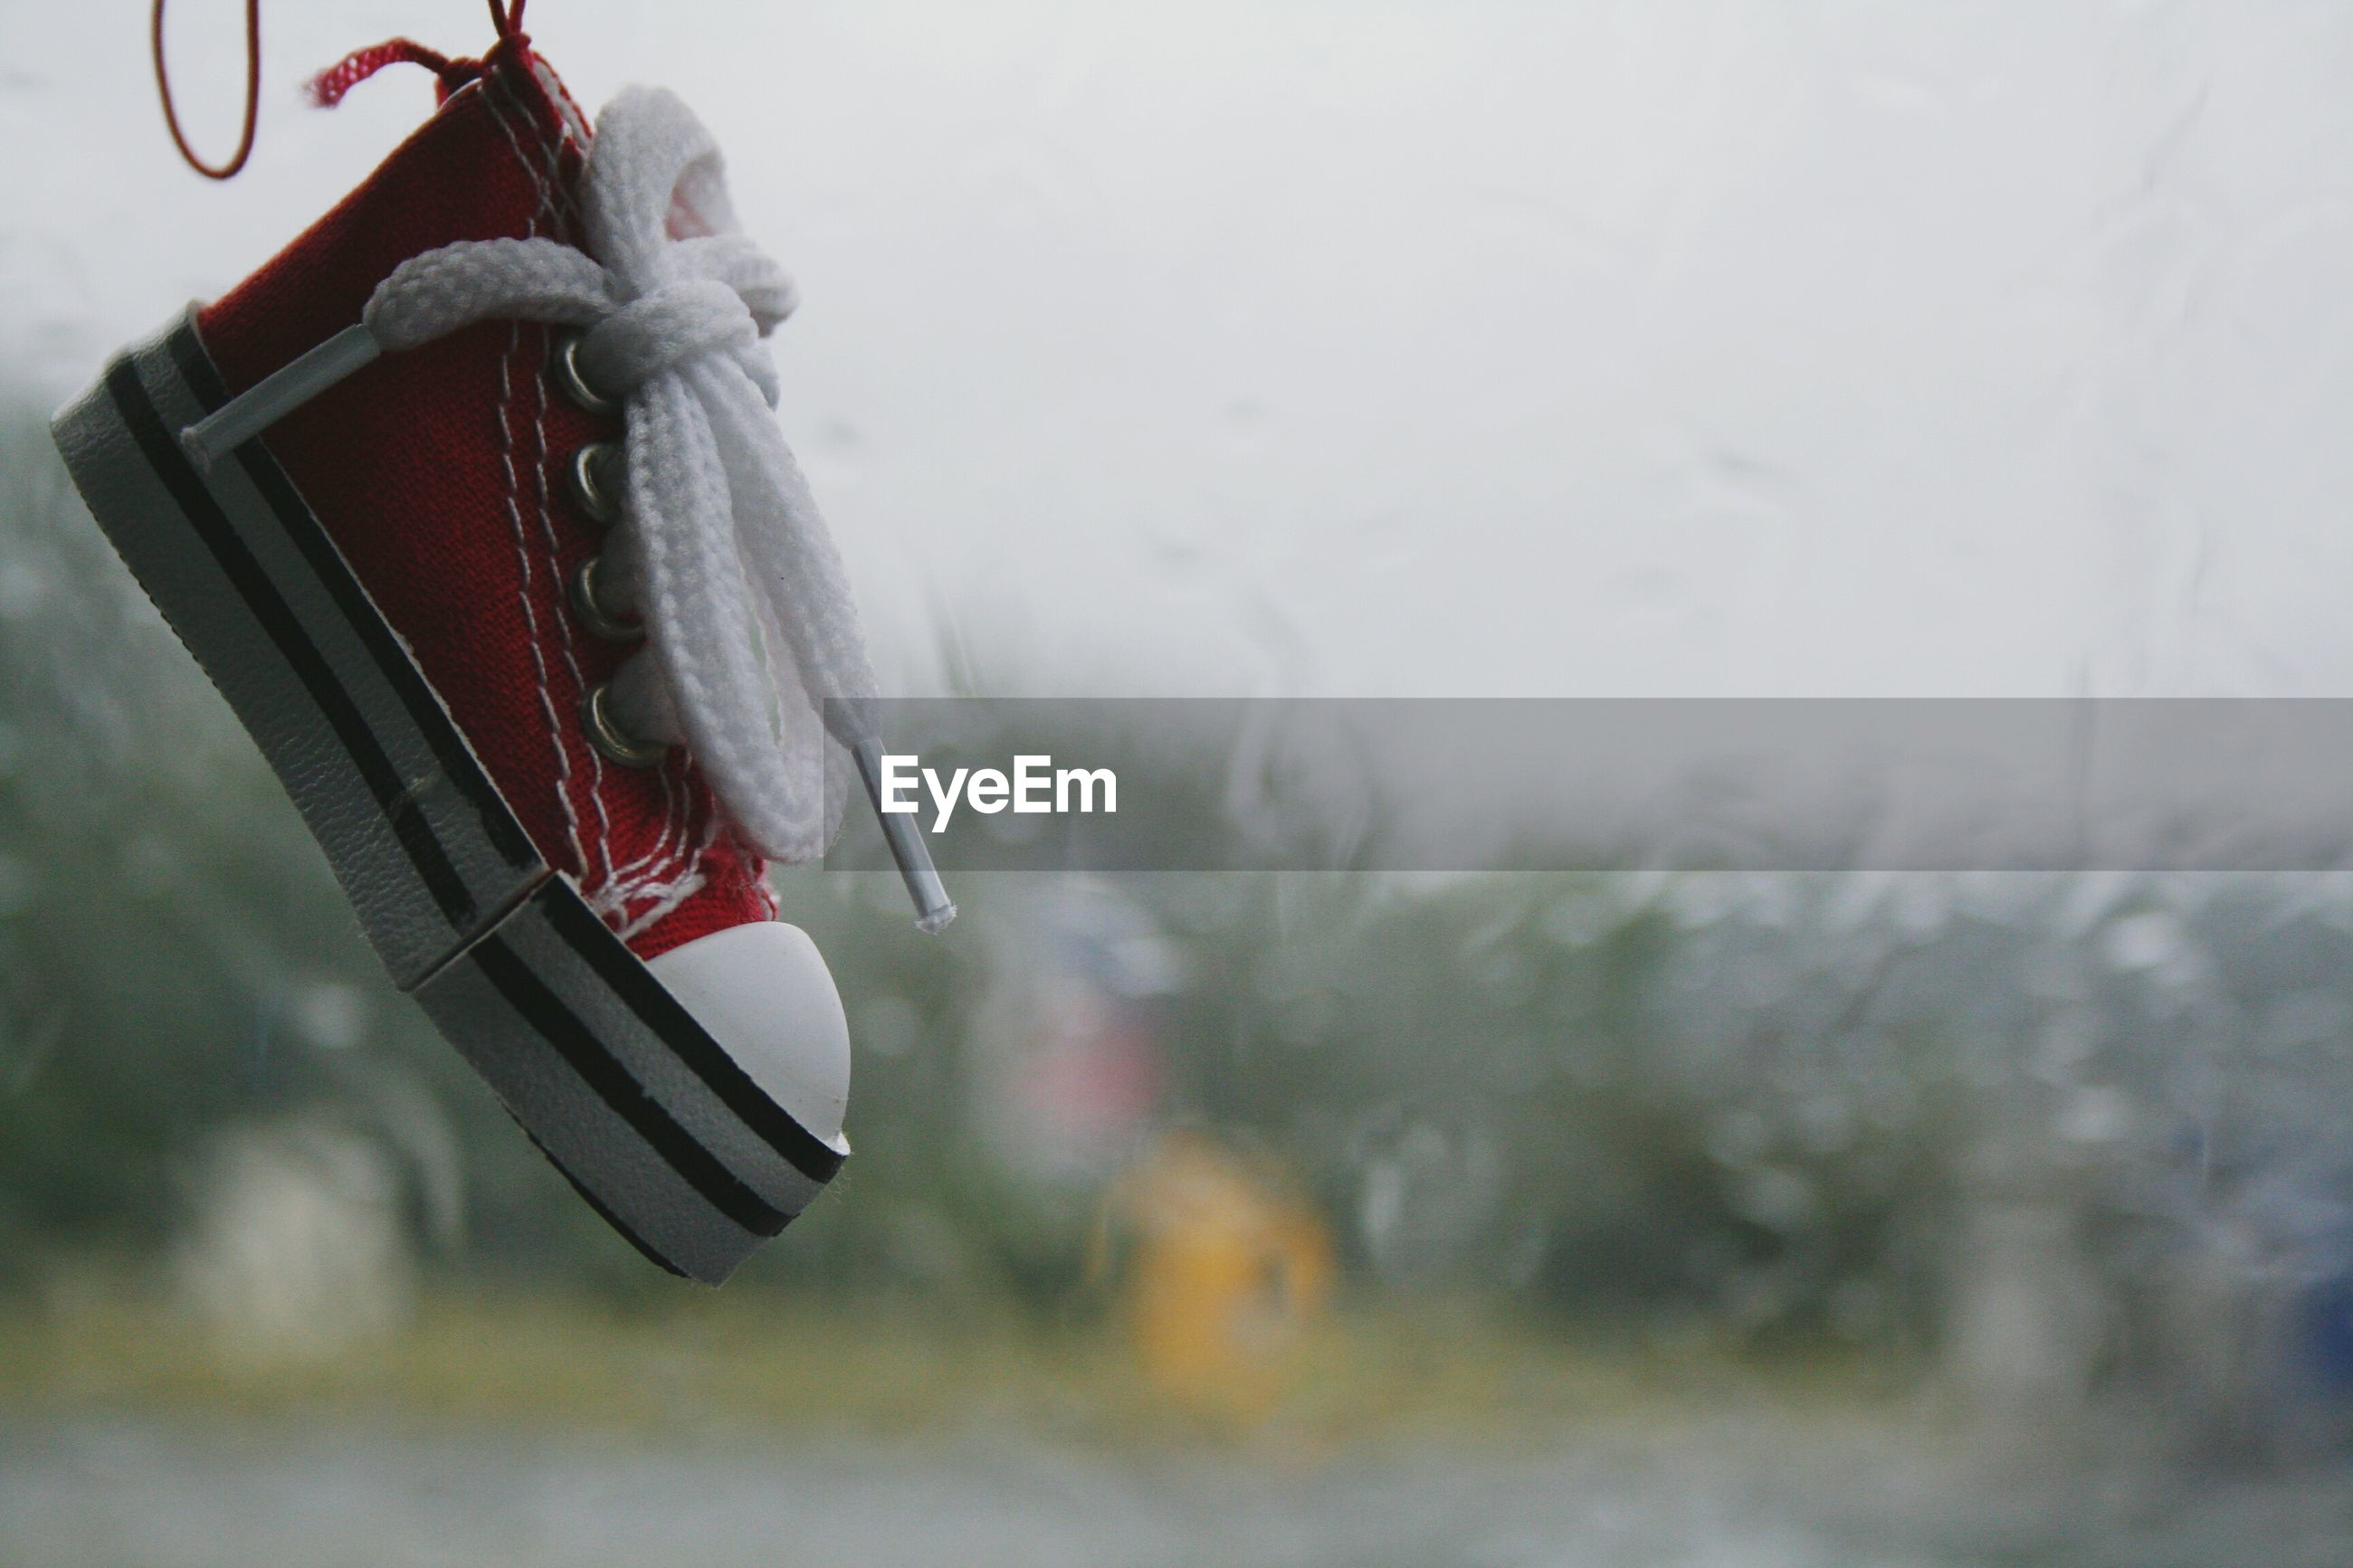 Close-up of red shoe